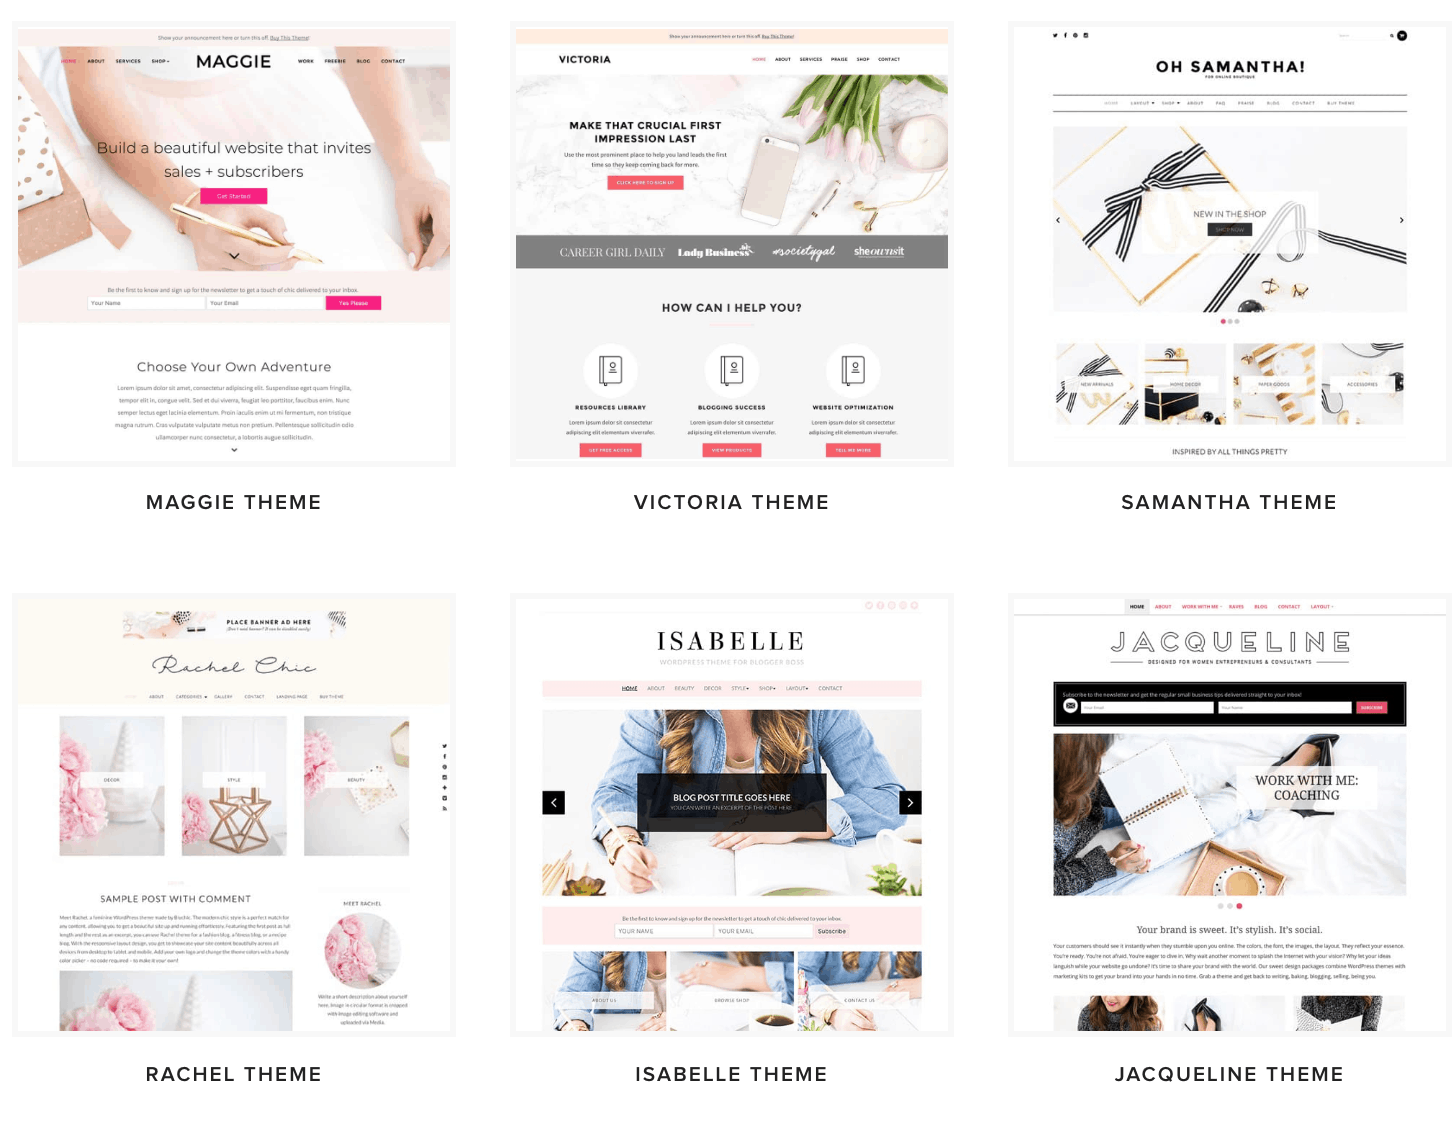 monetize blog niches, how to monetize a fashion blog how to get paid for fashion blogging make money fashion blogger